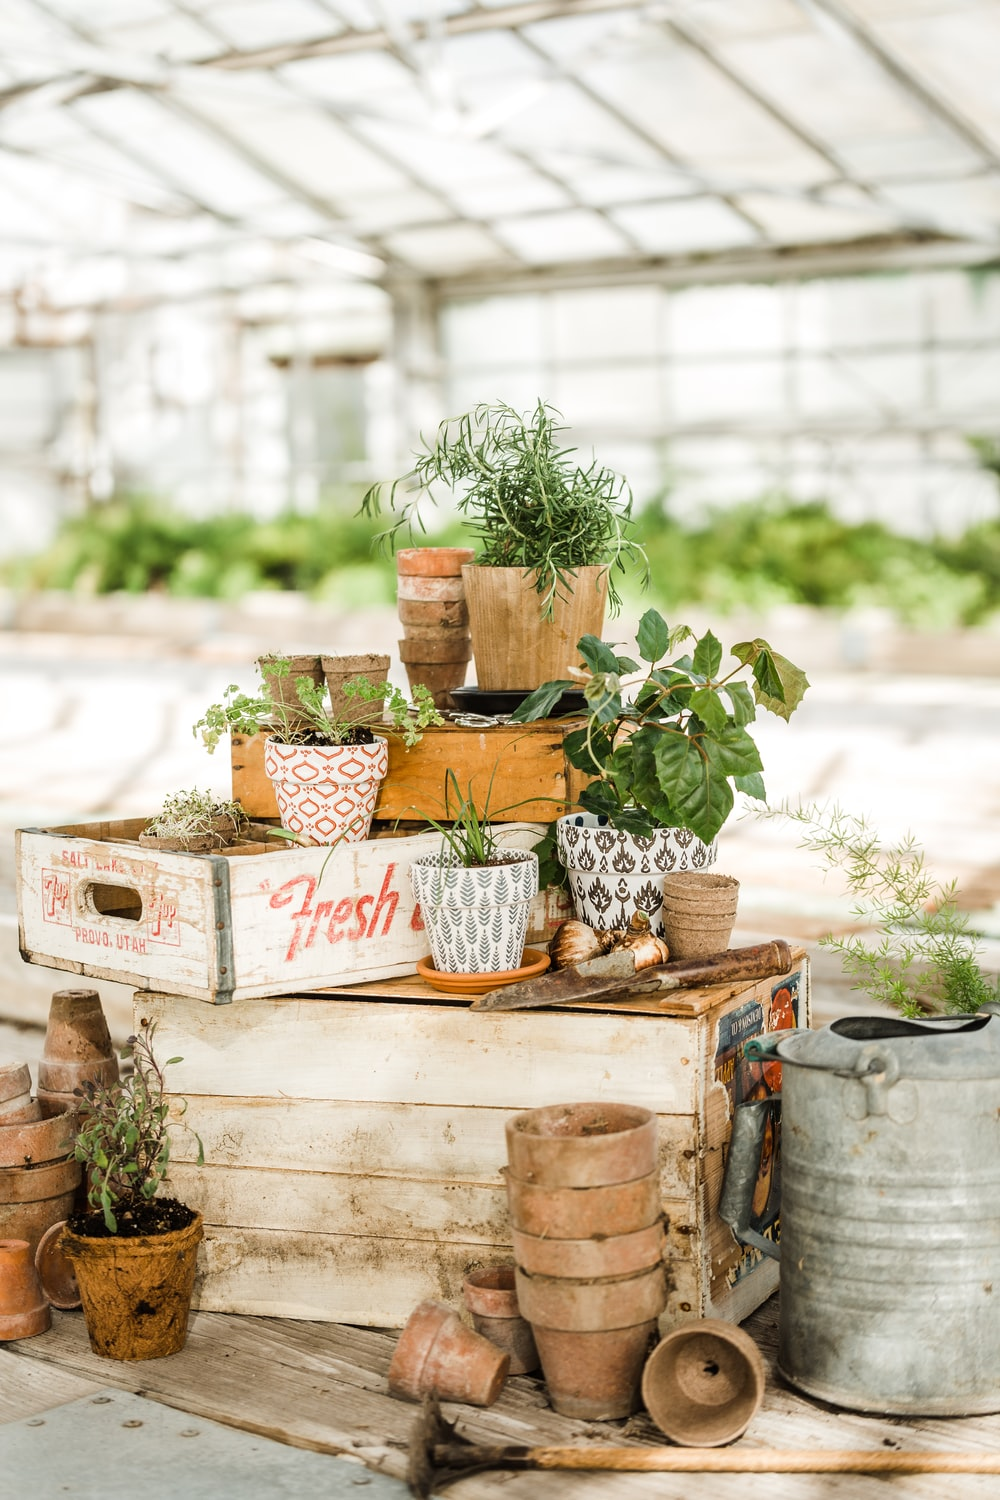 green potted plants on white wooden crate